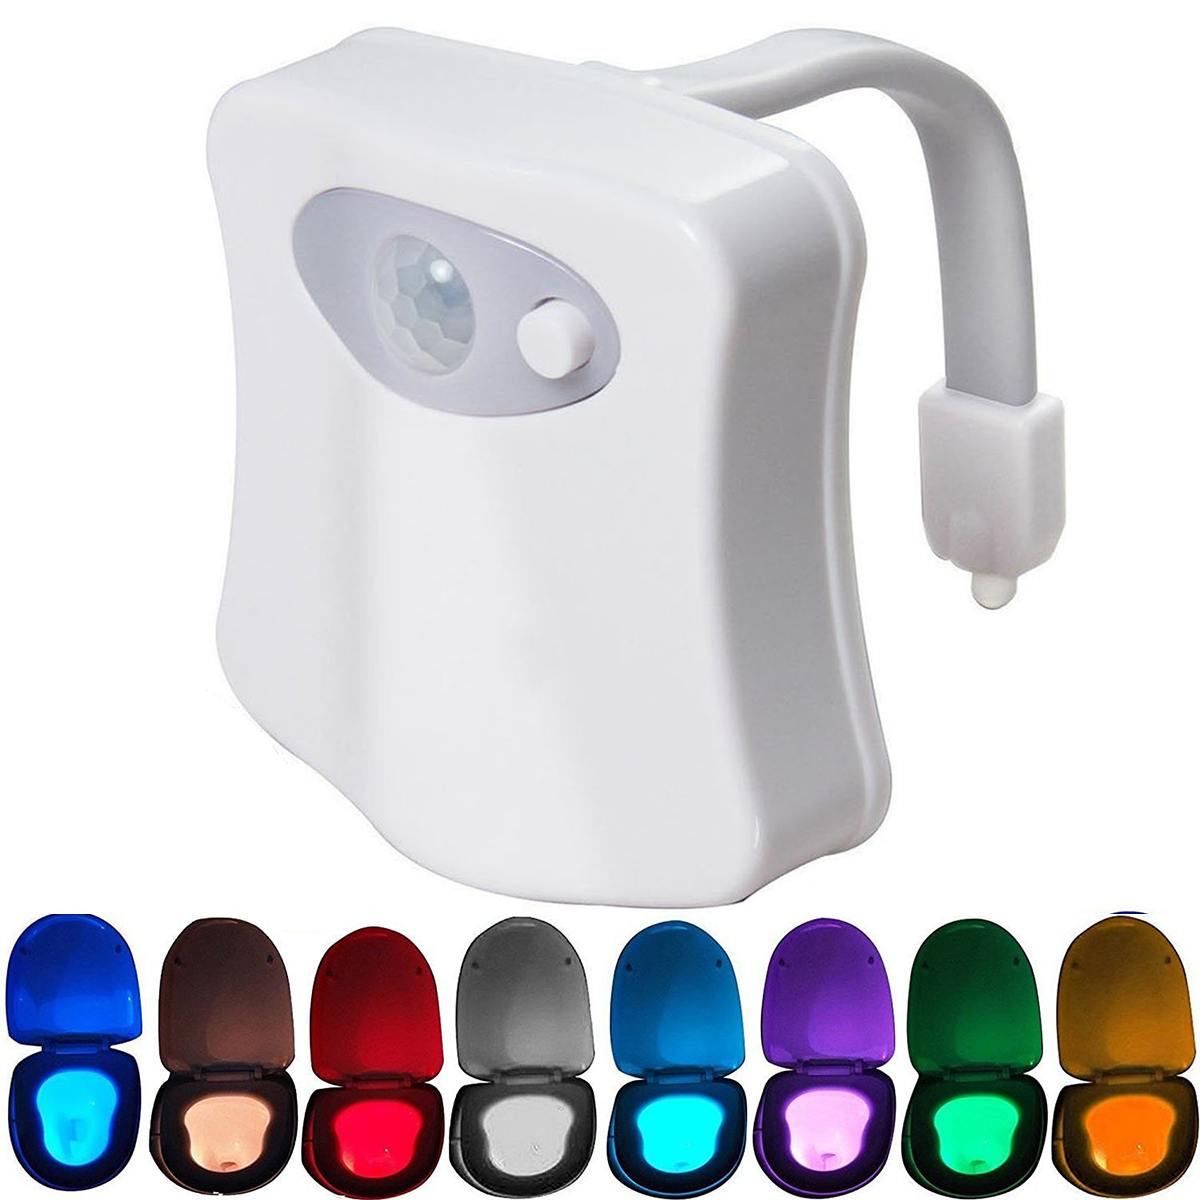 Unique /& Funny Birthday Gifts Idea for Dad Teen Boy Kids Men Women Cool Fun Gadgets 16-Color Toilet Night Light Motion Activated Detection Toilet Bowl Lights 1 Pack Toilet Light